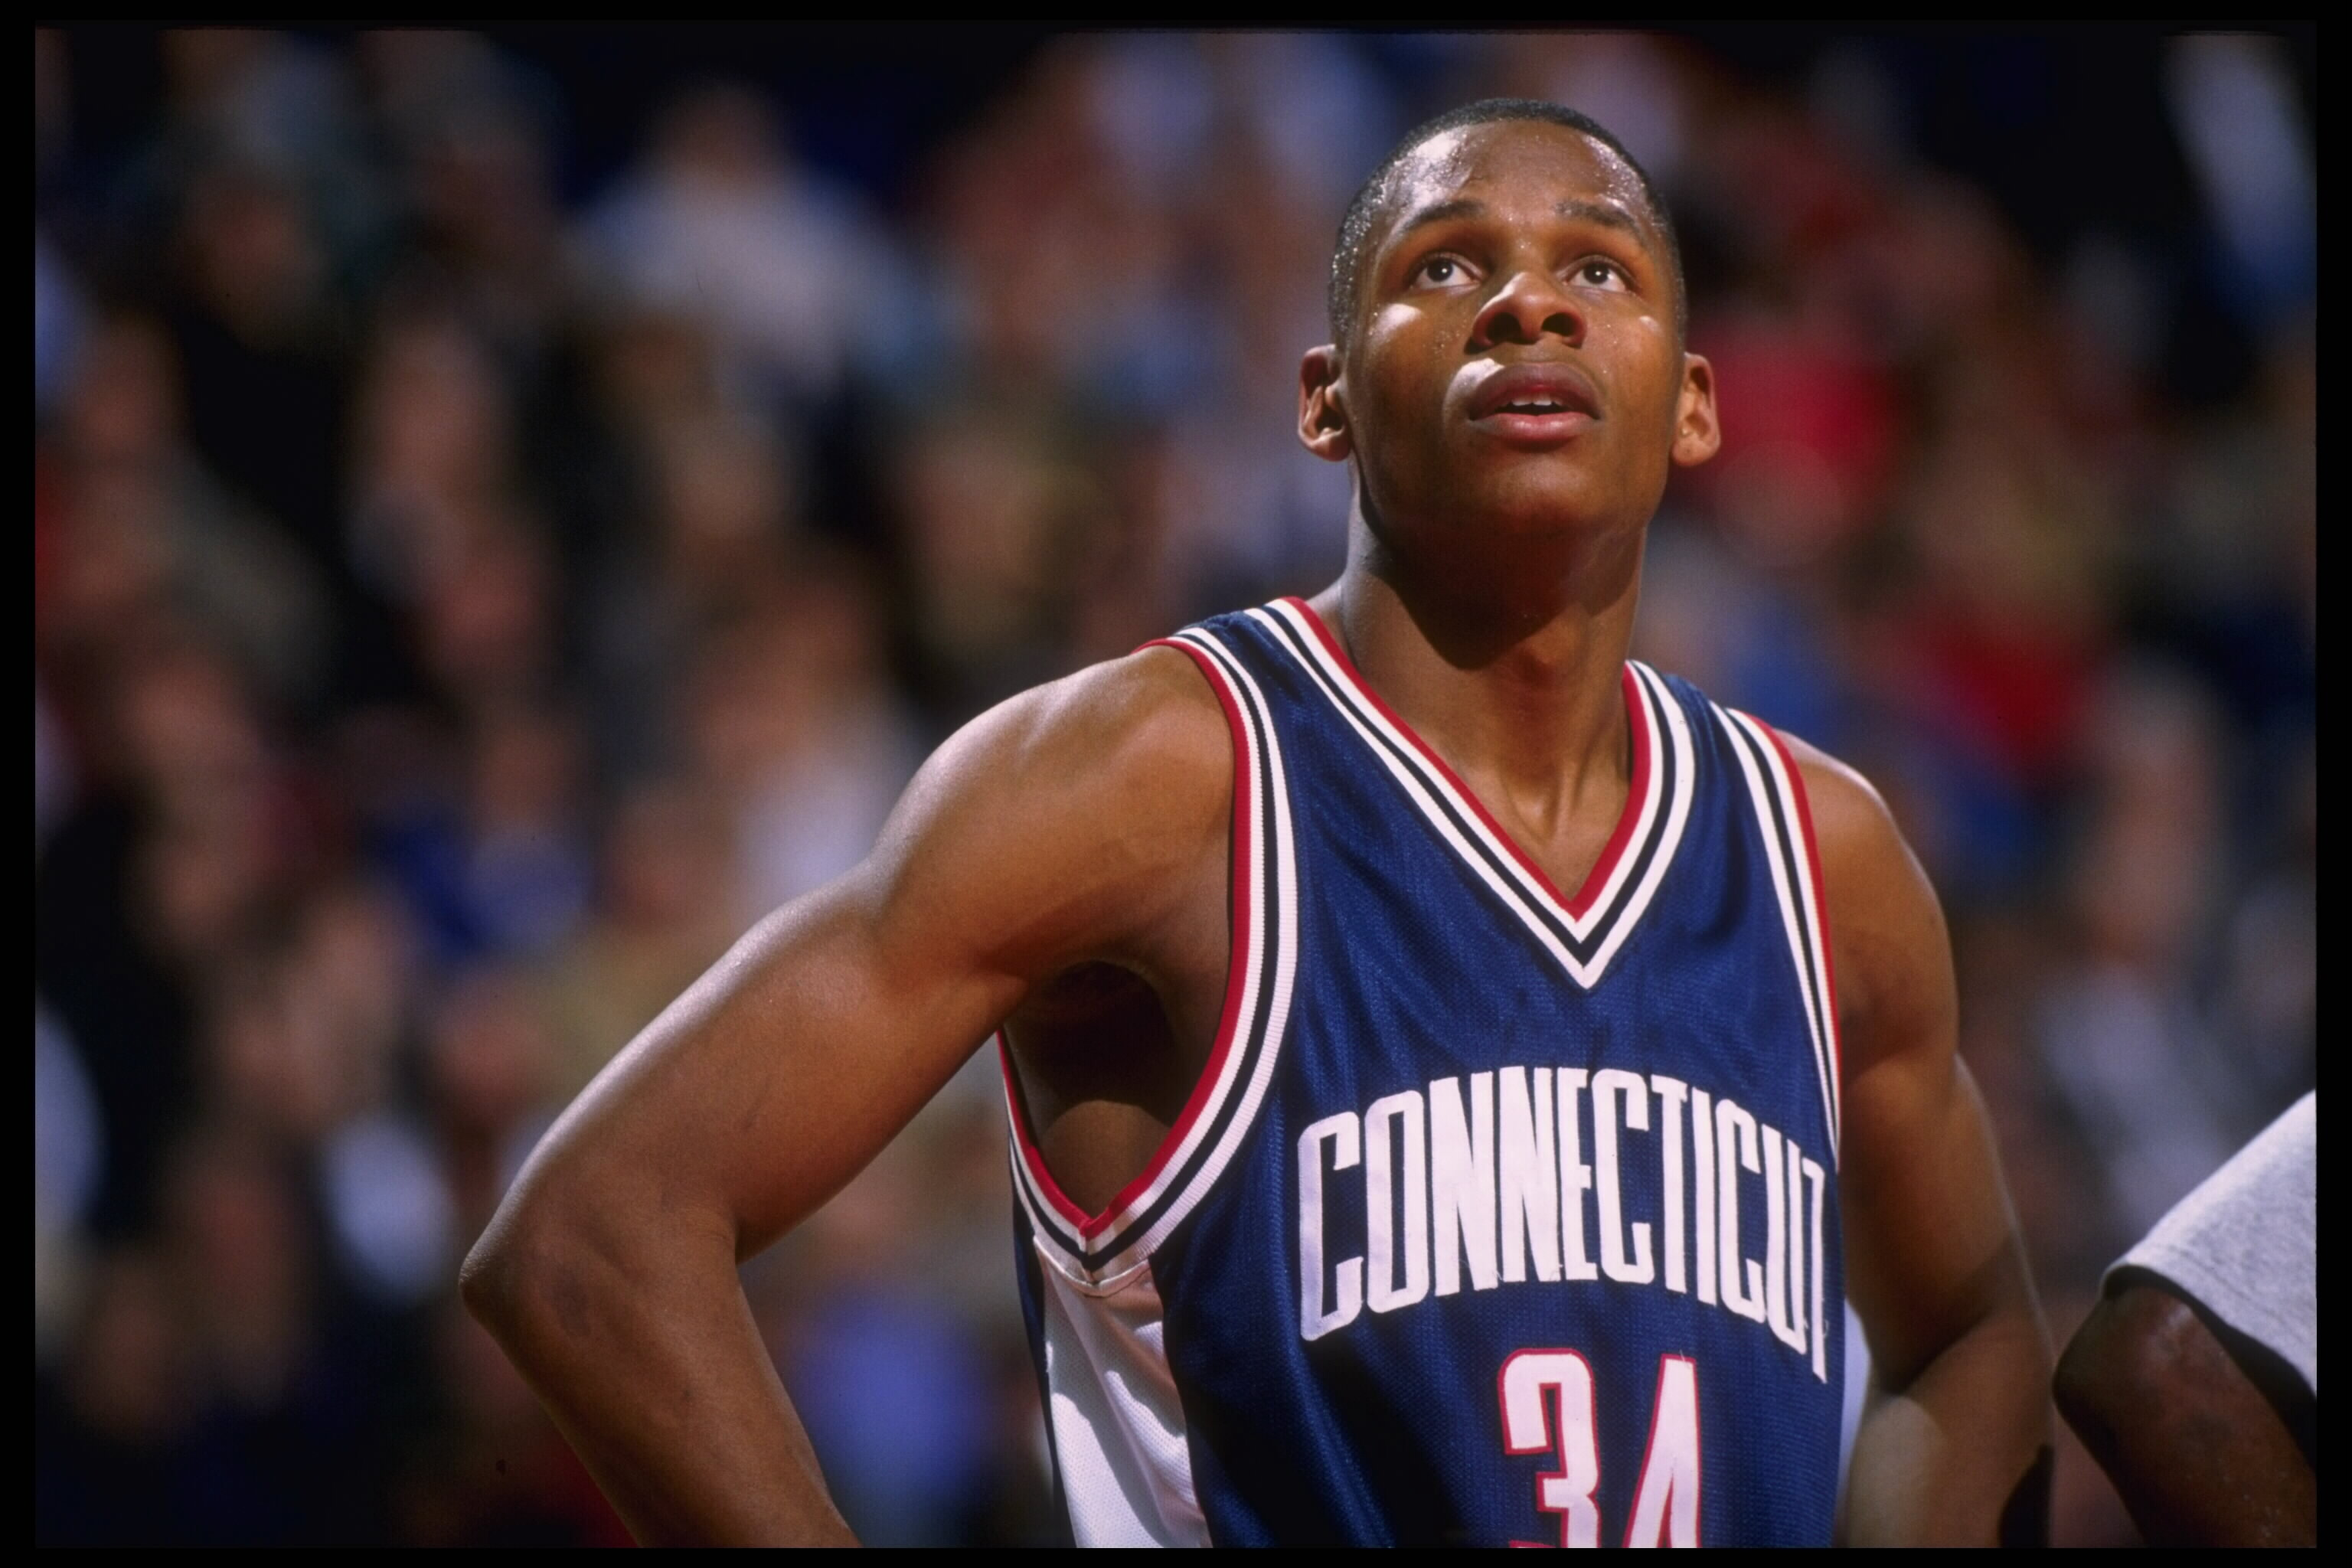 Ray Allen Connecticut